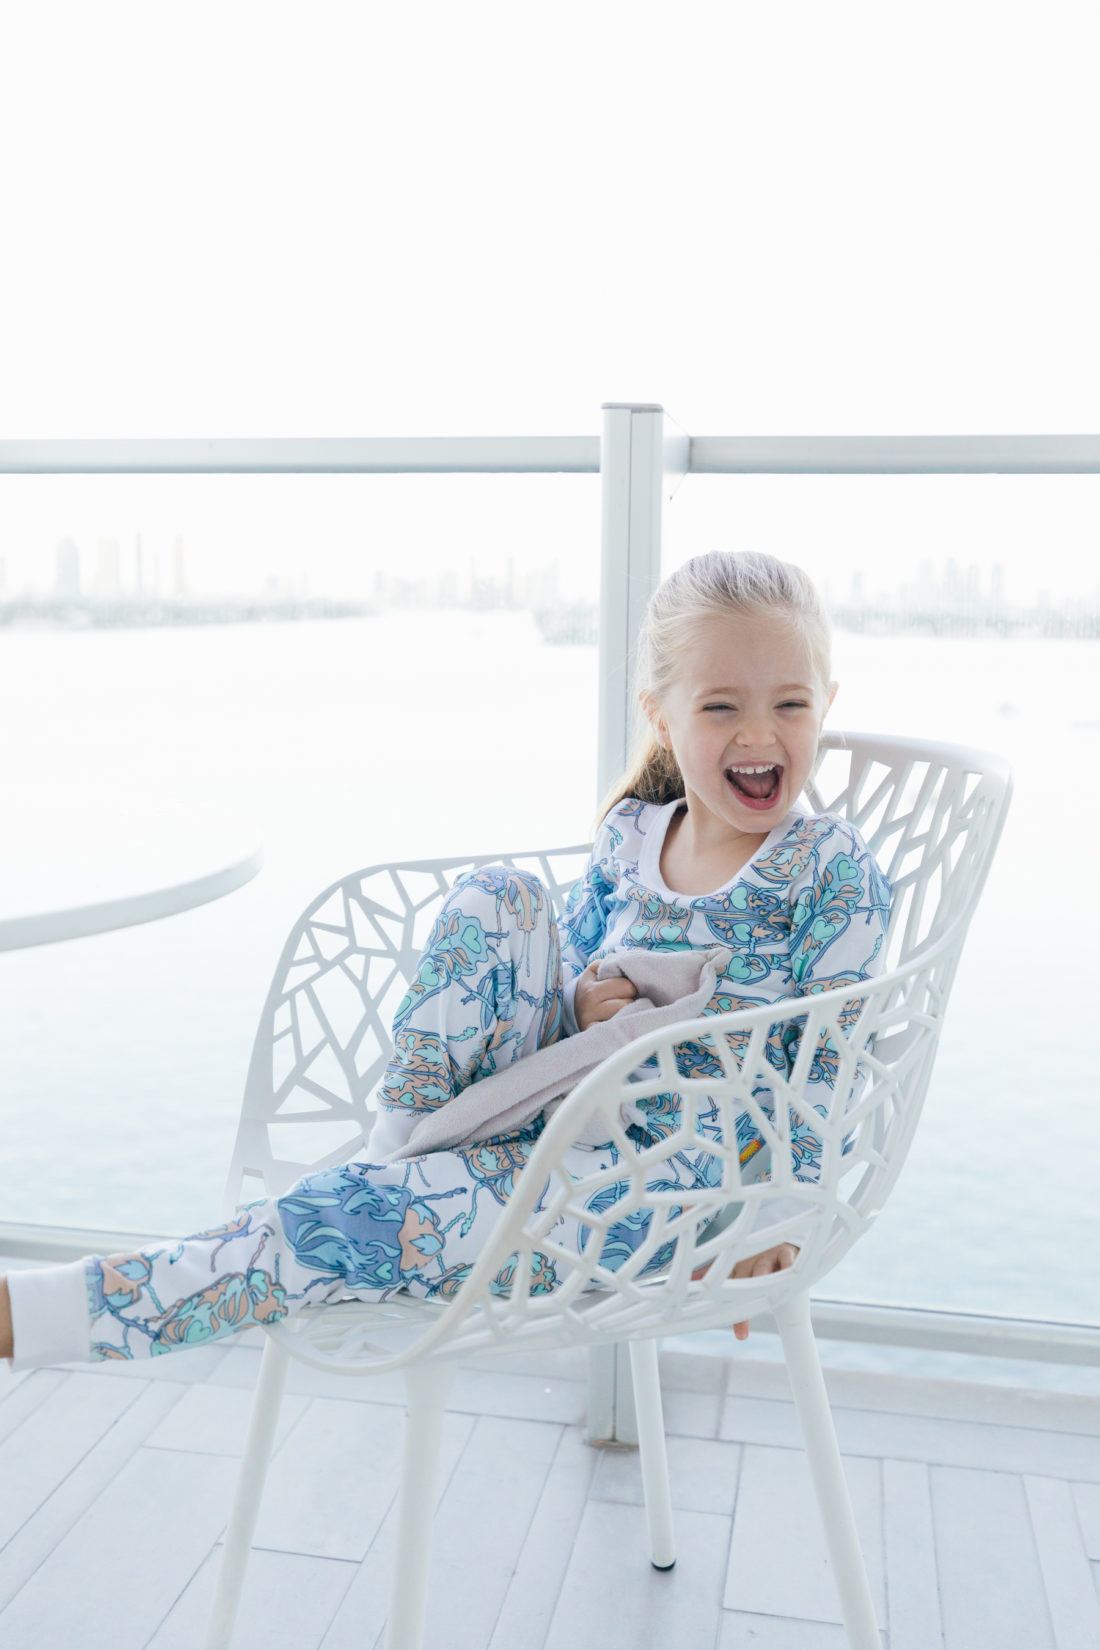 Marlowe Martino relaxes on the balcony in Miami wearing her buggy pajamas from the Happily Eva After x Masala Baby capsule collection